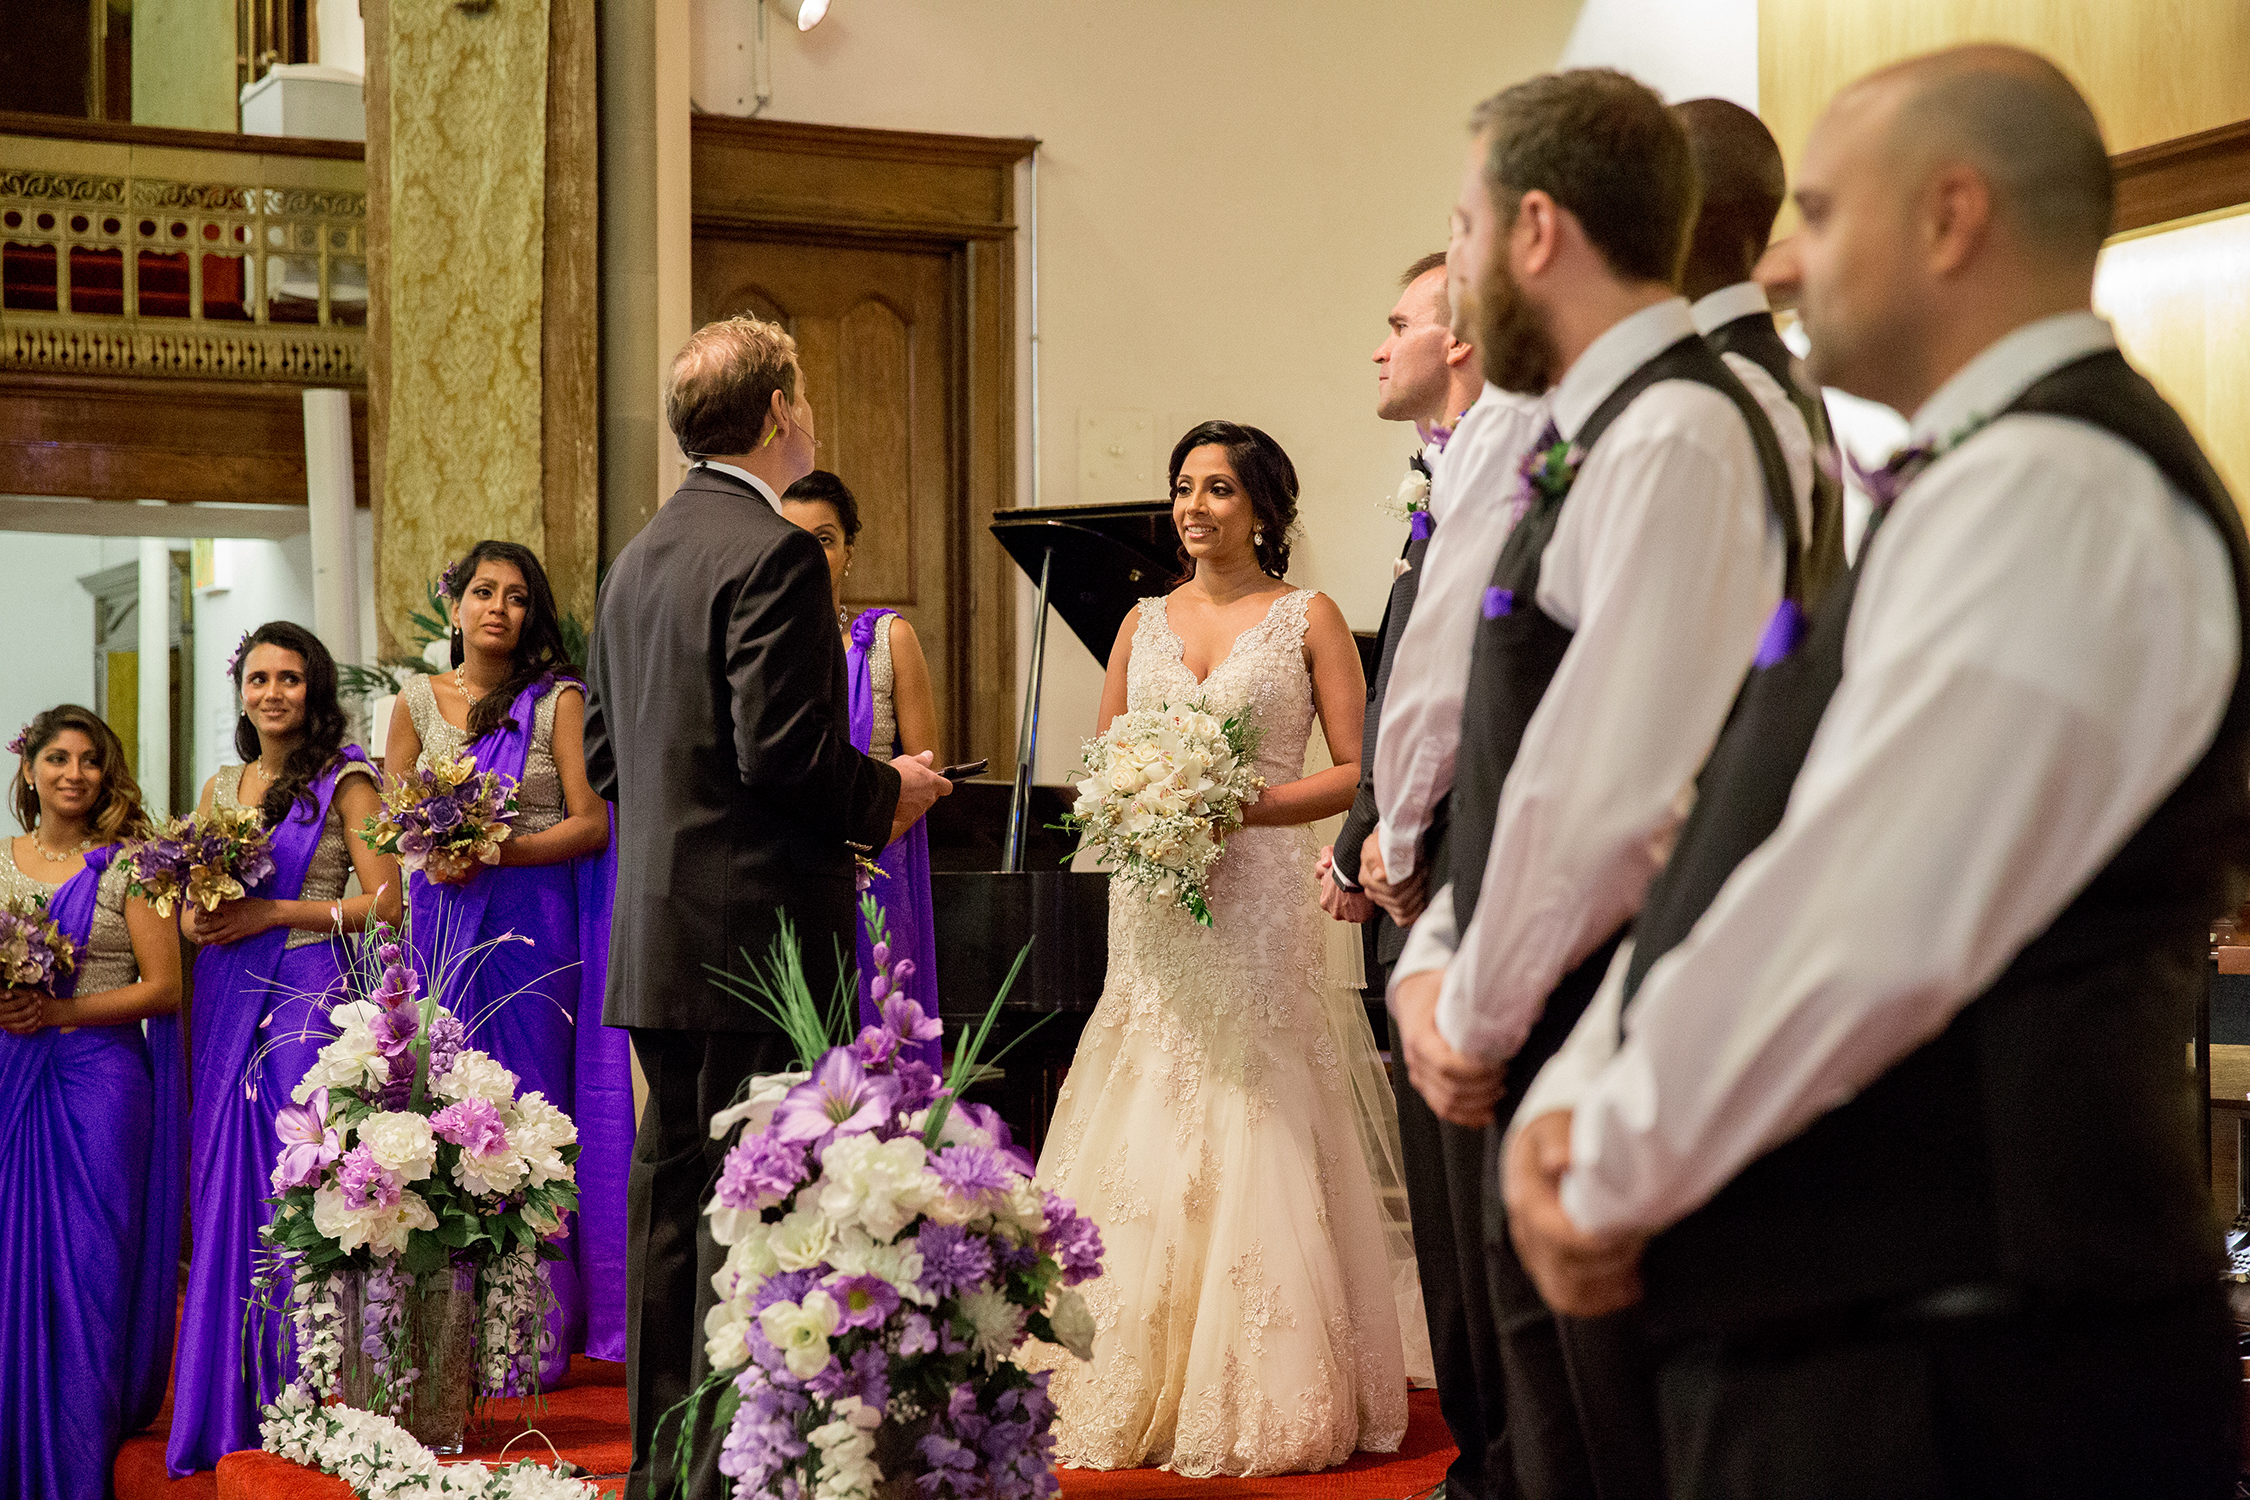 CalgaryWeddingPhotography_ParrishHousePhotos_JR03_17.jpg